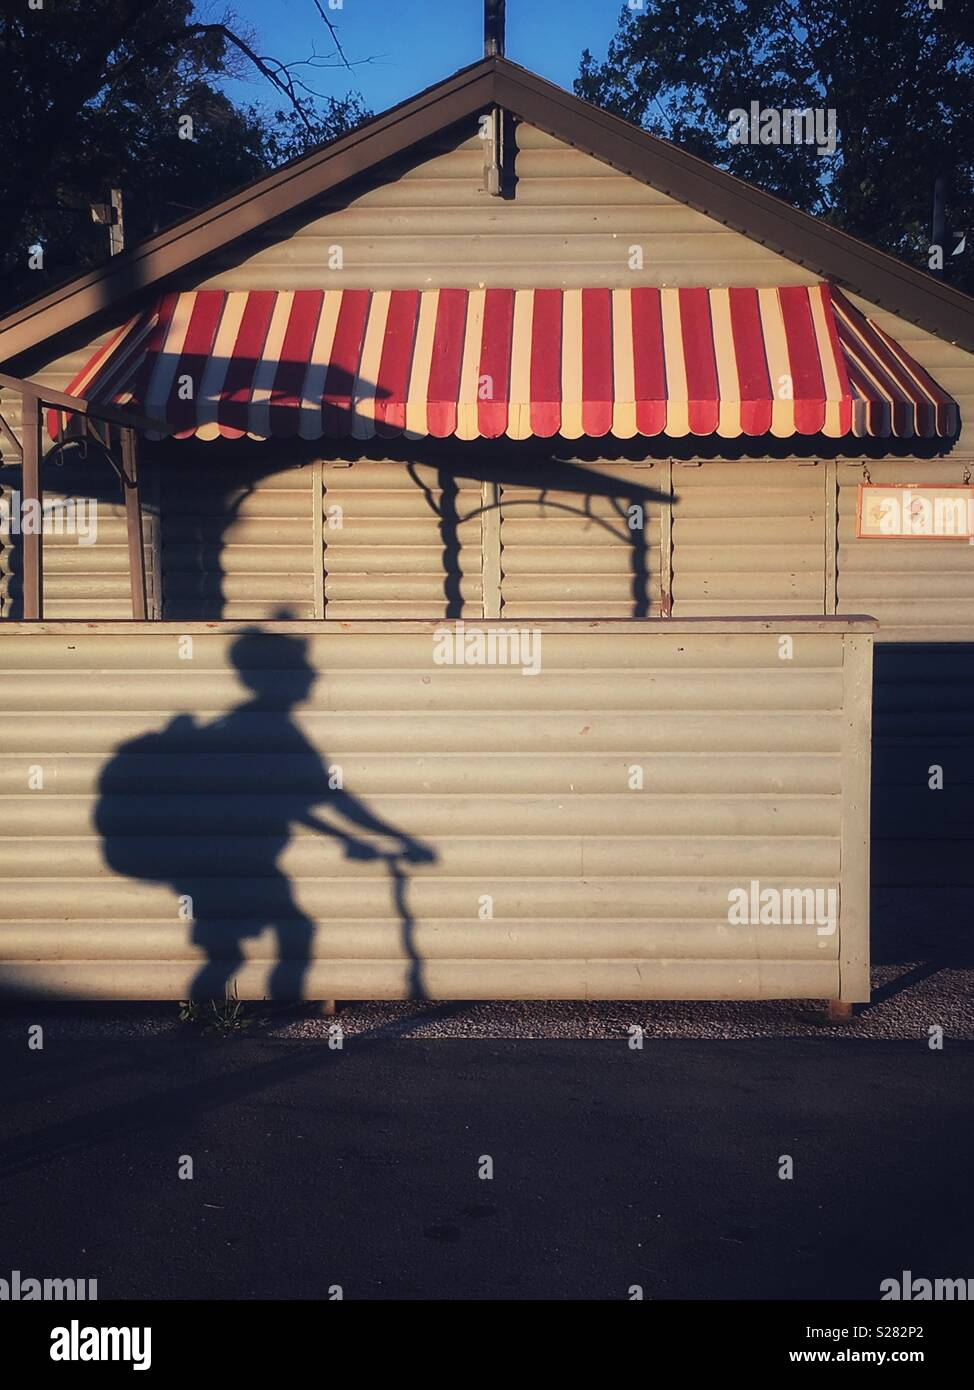 Summer shadow of yesteryear - Stock Image